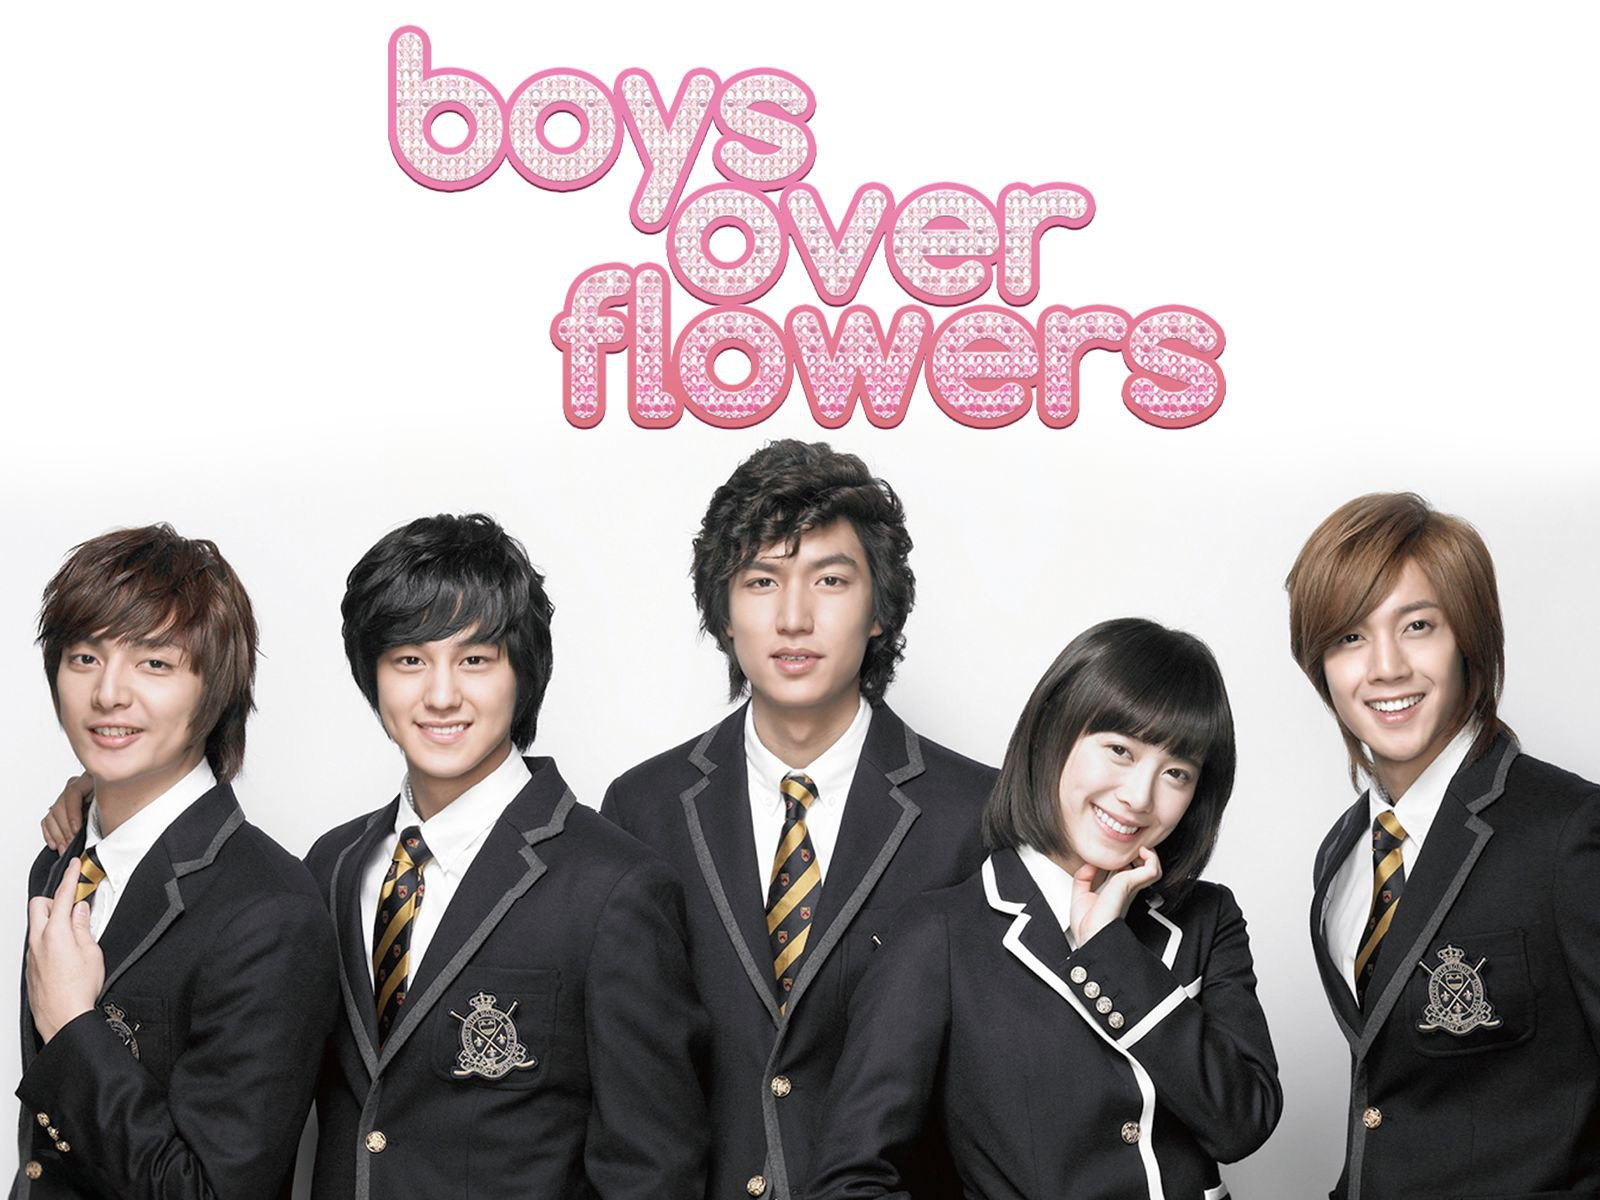 F4 Thailand: Boys Over Flower Release Date, Preview, And Where To Watch?